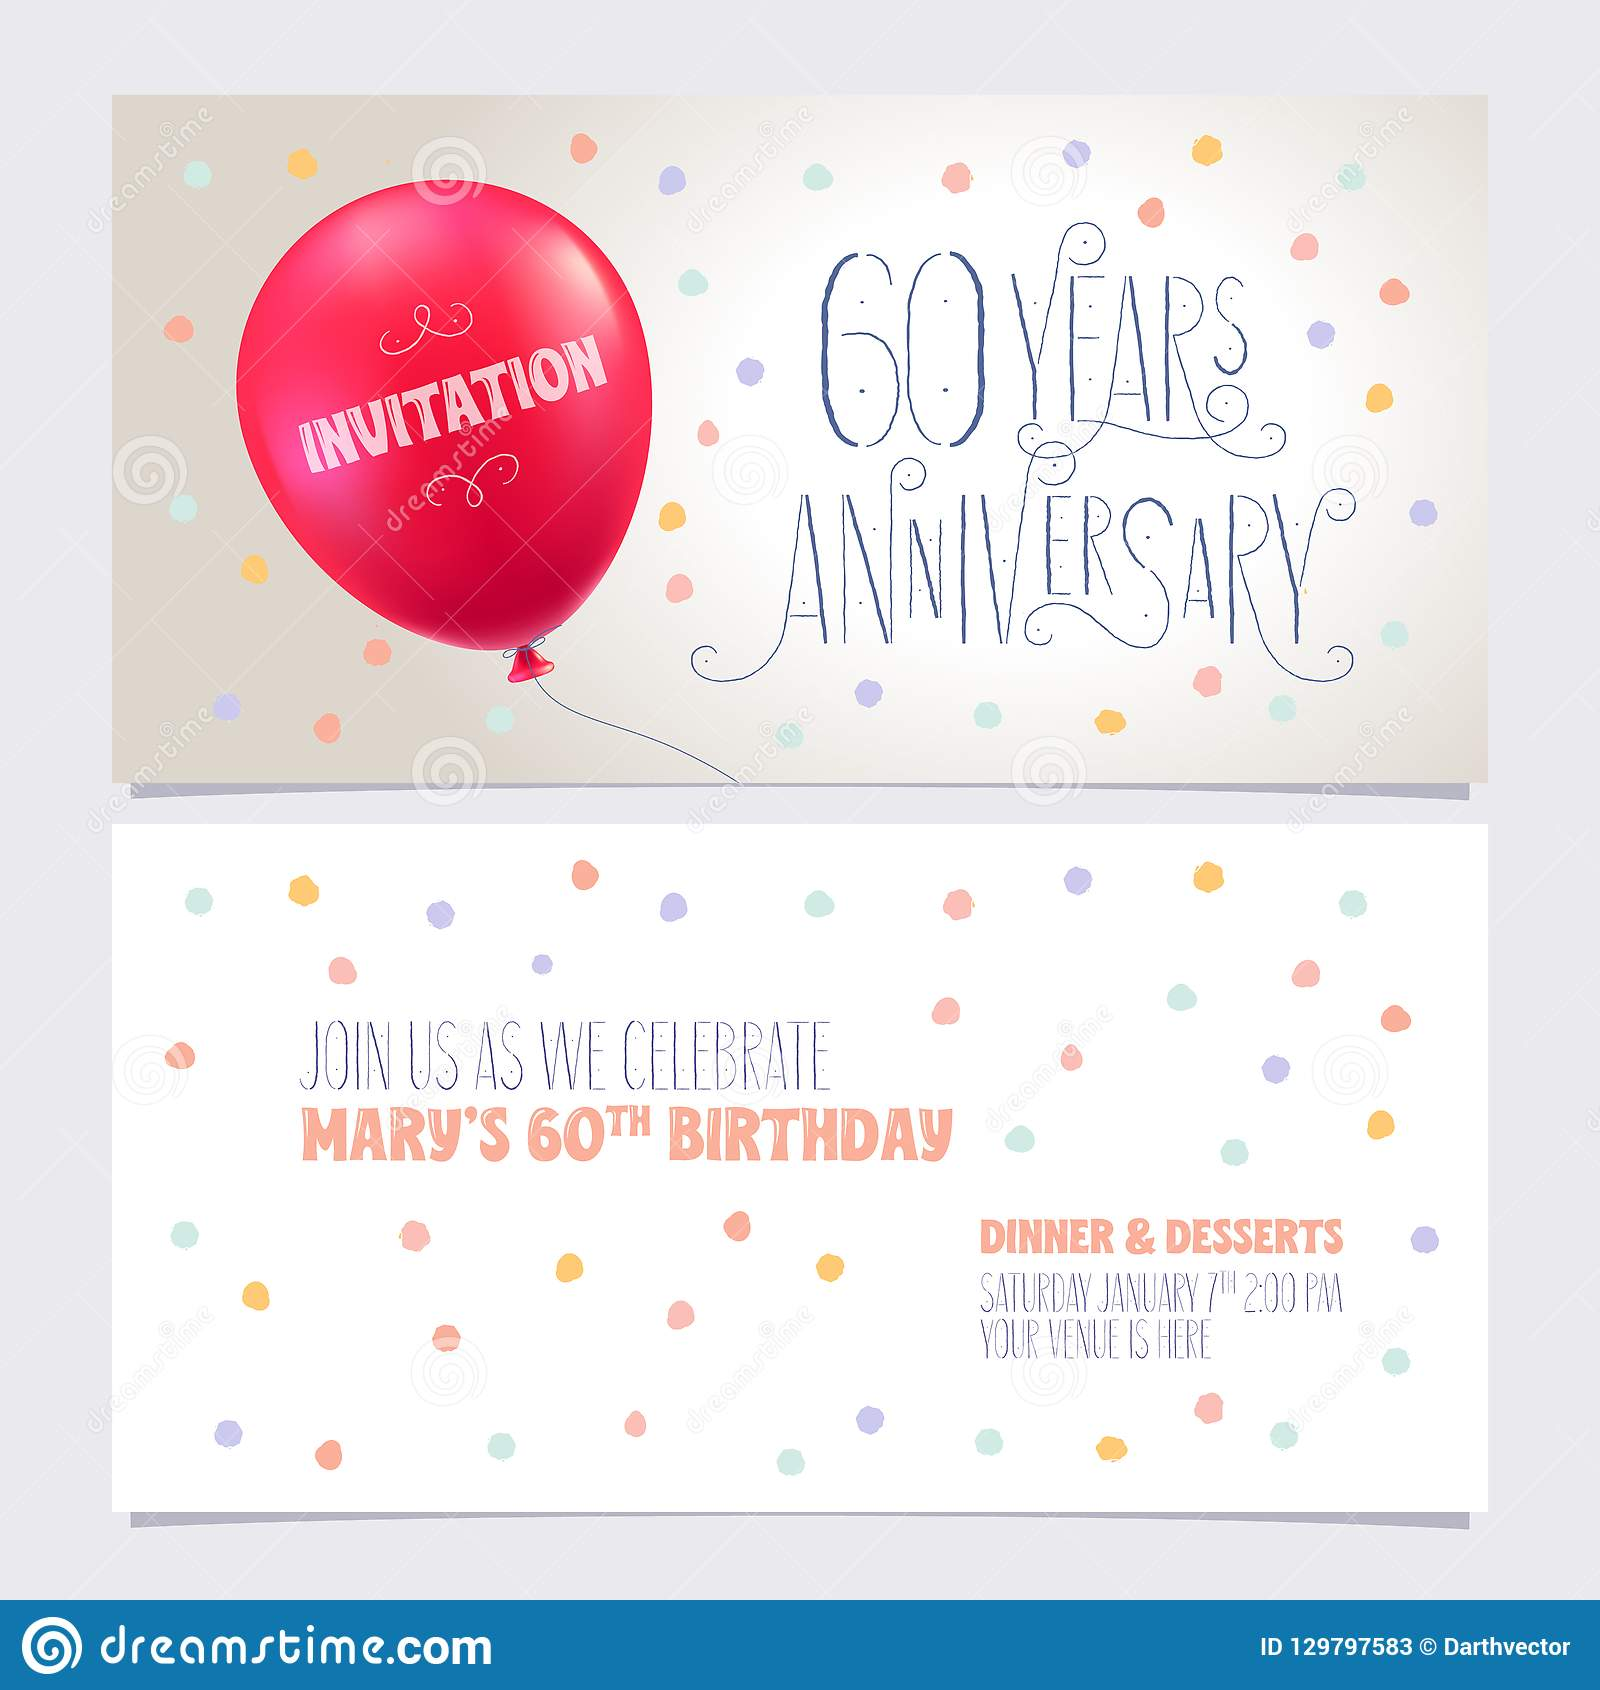 60 Years Anniversary Invite Vector Illustration Graphic Design Element With Air Balloon For 60th Birthday Card Party Invitation